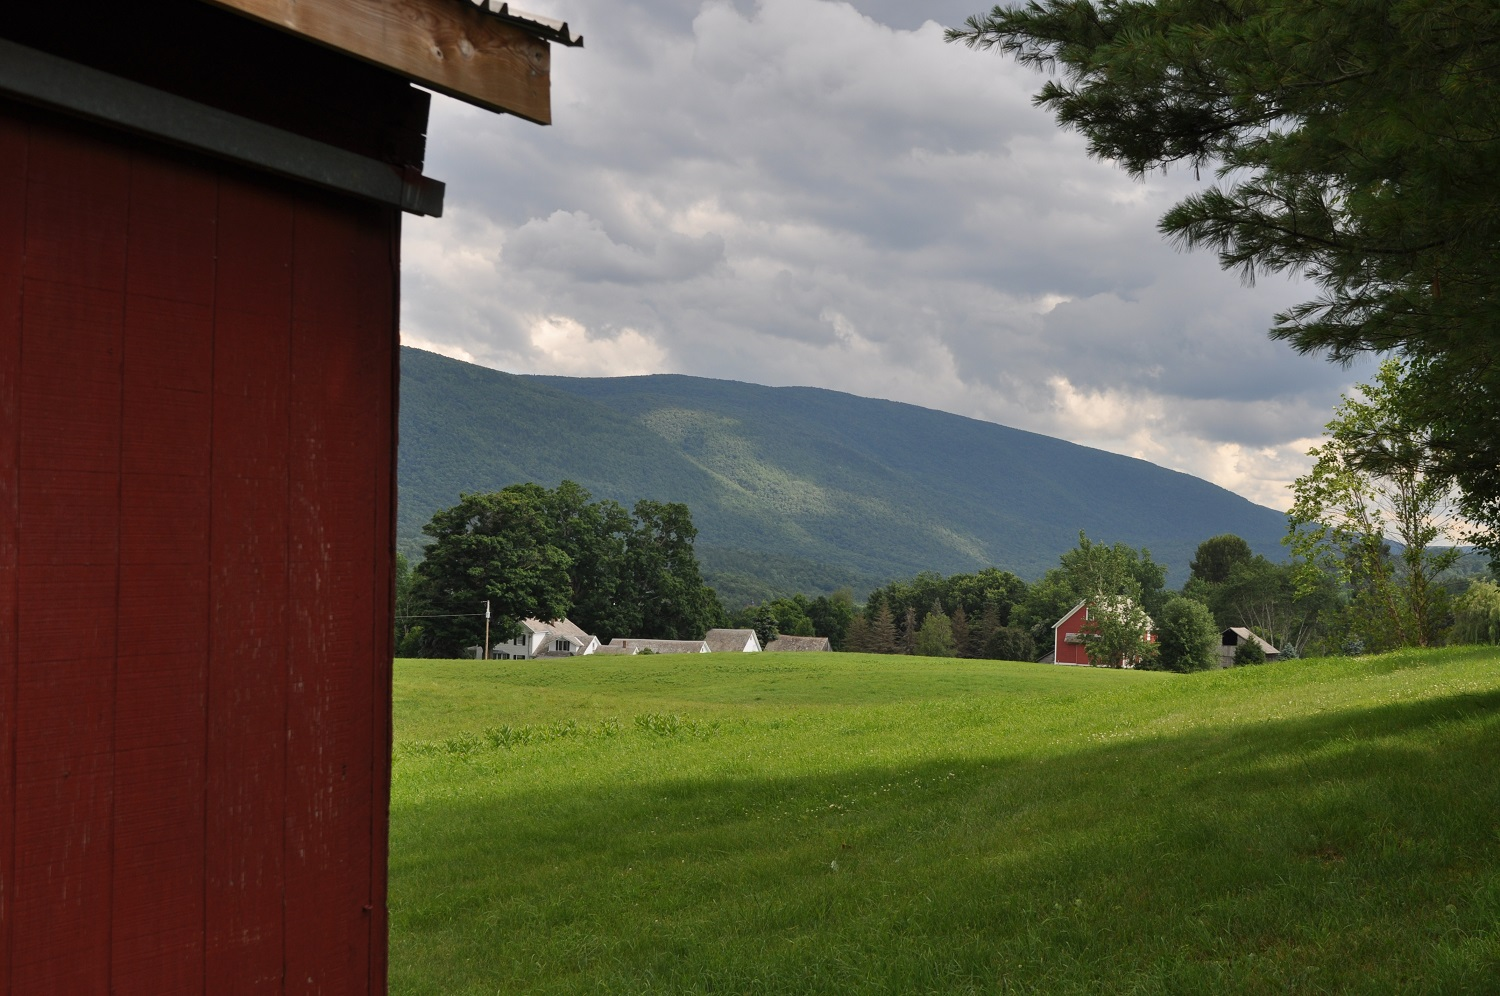 mettawee - vermont vacation home rentals image 1